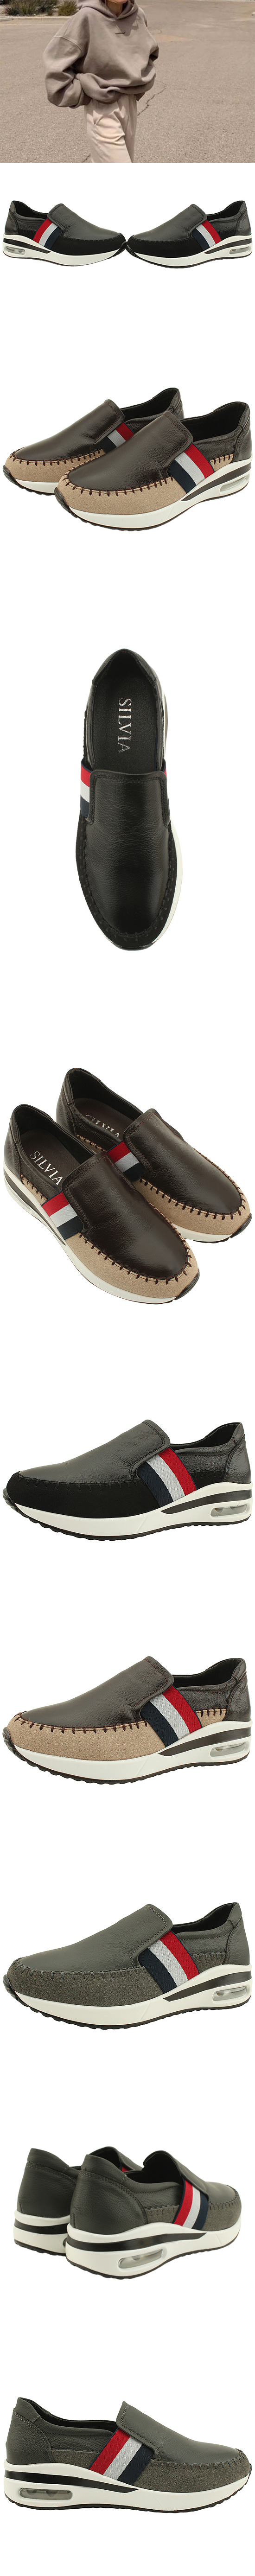 Cowhide 3-wire banding air slip-on gray